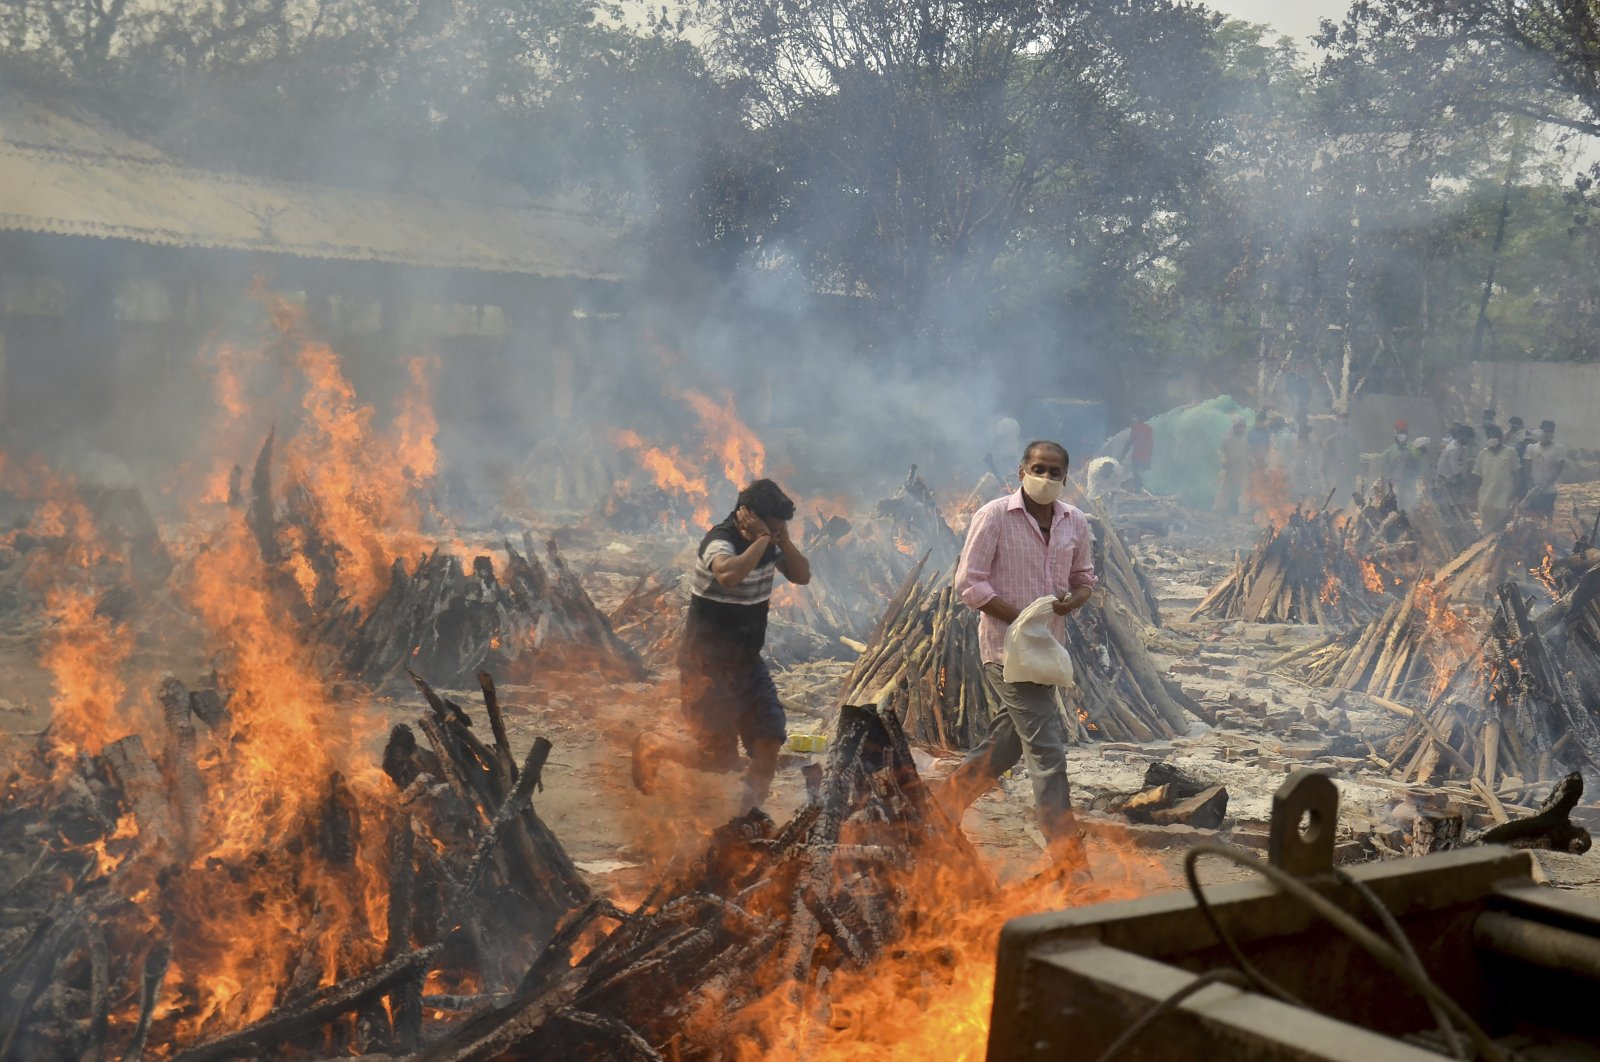 Relatives react to heat emitting from the multiple funeral pyres of COVID-19 victims at a crematorium in the outskirts of New Delhi, India, April 29, 2021. (AP Photo)